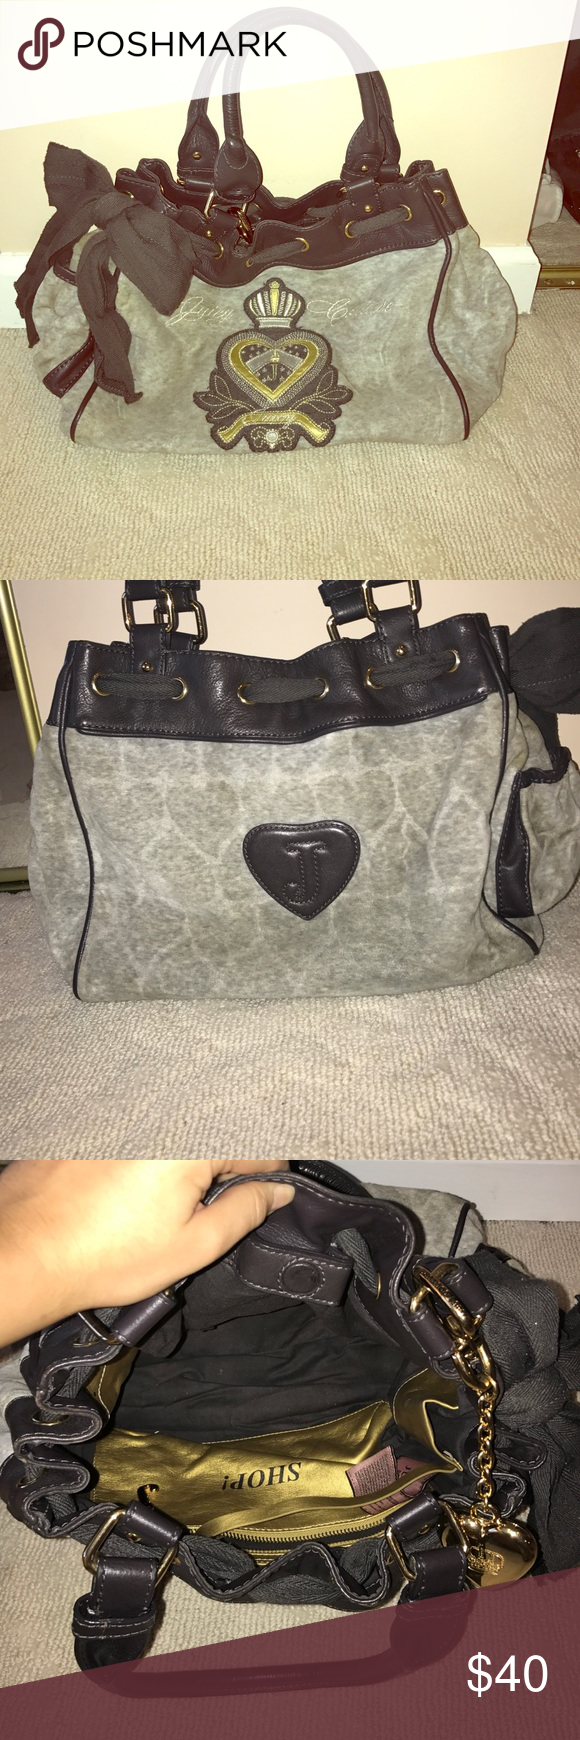 Juicy couture velour purse Gray, medium sized velour material, perfect for winter. Day dreamer bag Juicy Couture Bags Shoulder Bags